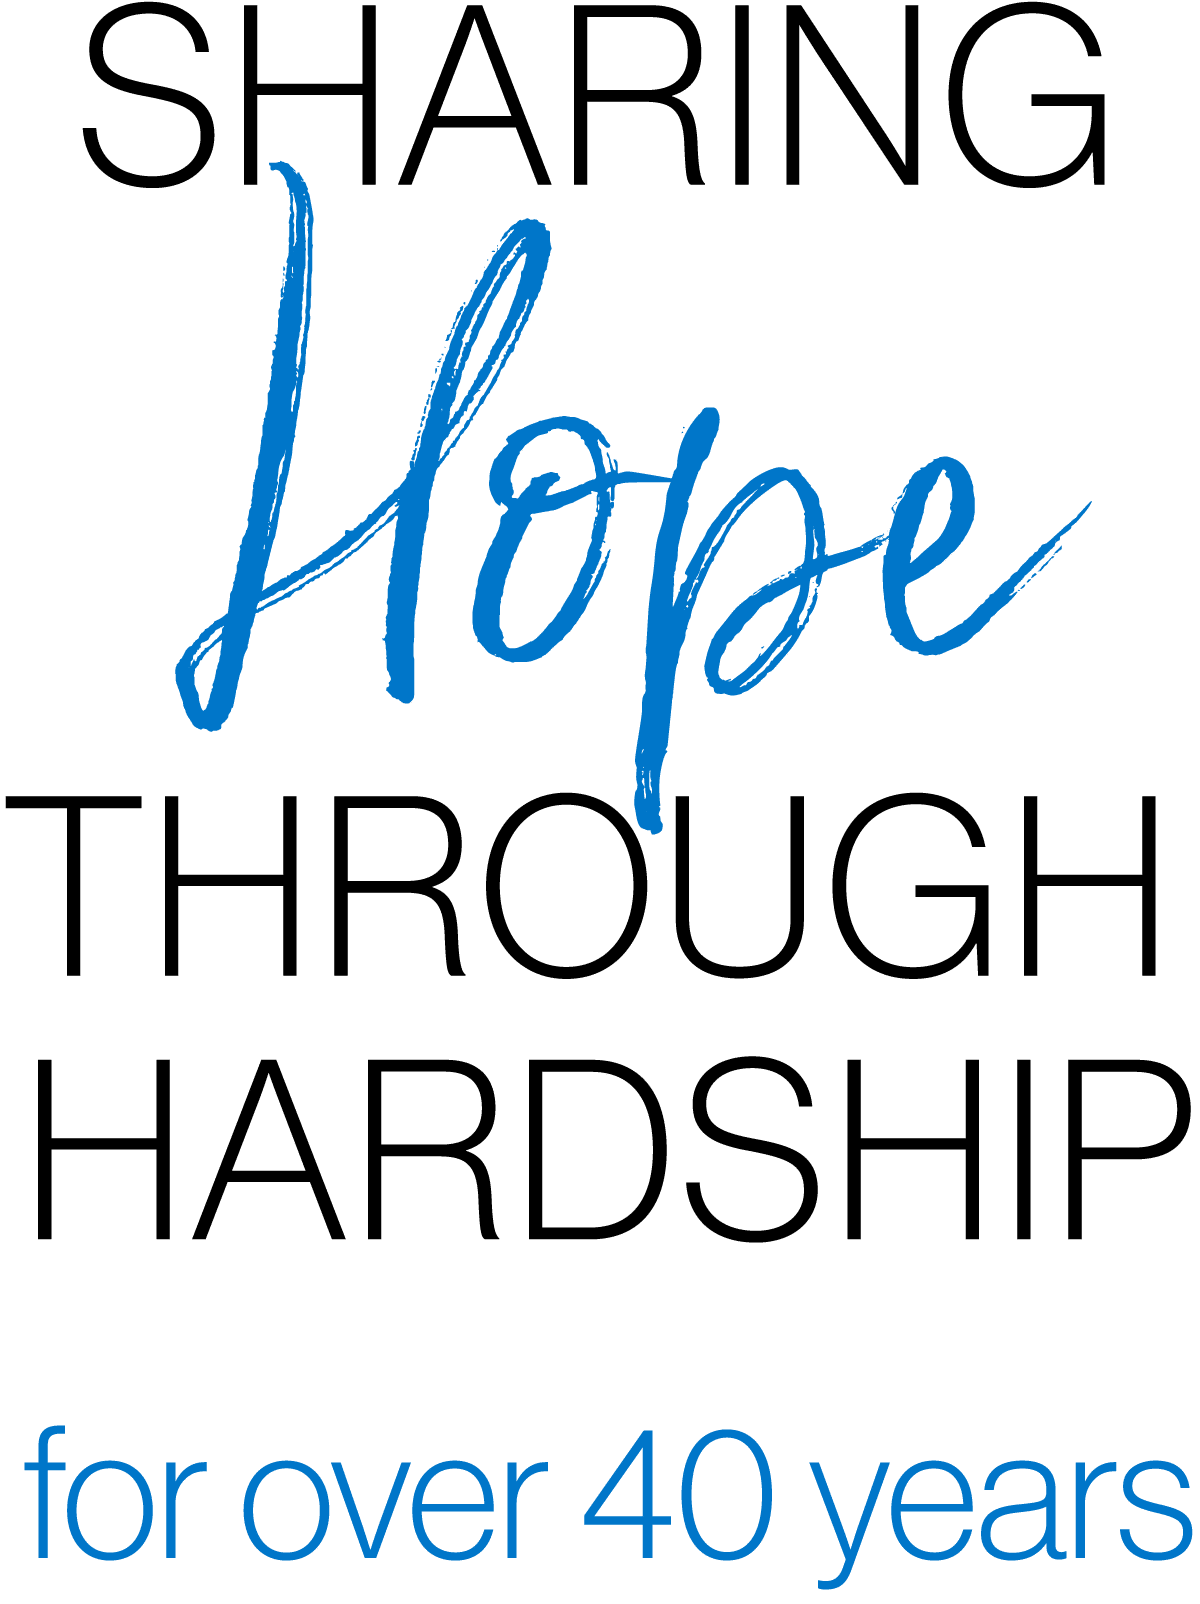 Sharing Hope Through Hardship2020 VERTICAL RGB 40 Years